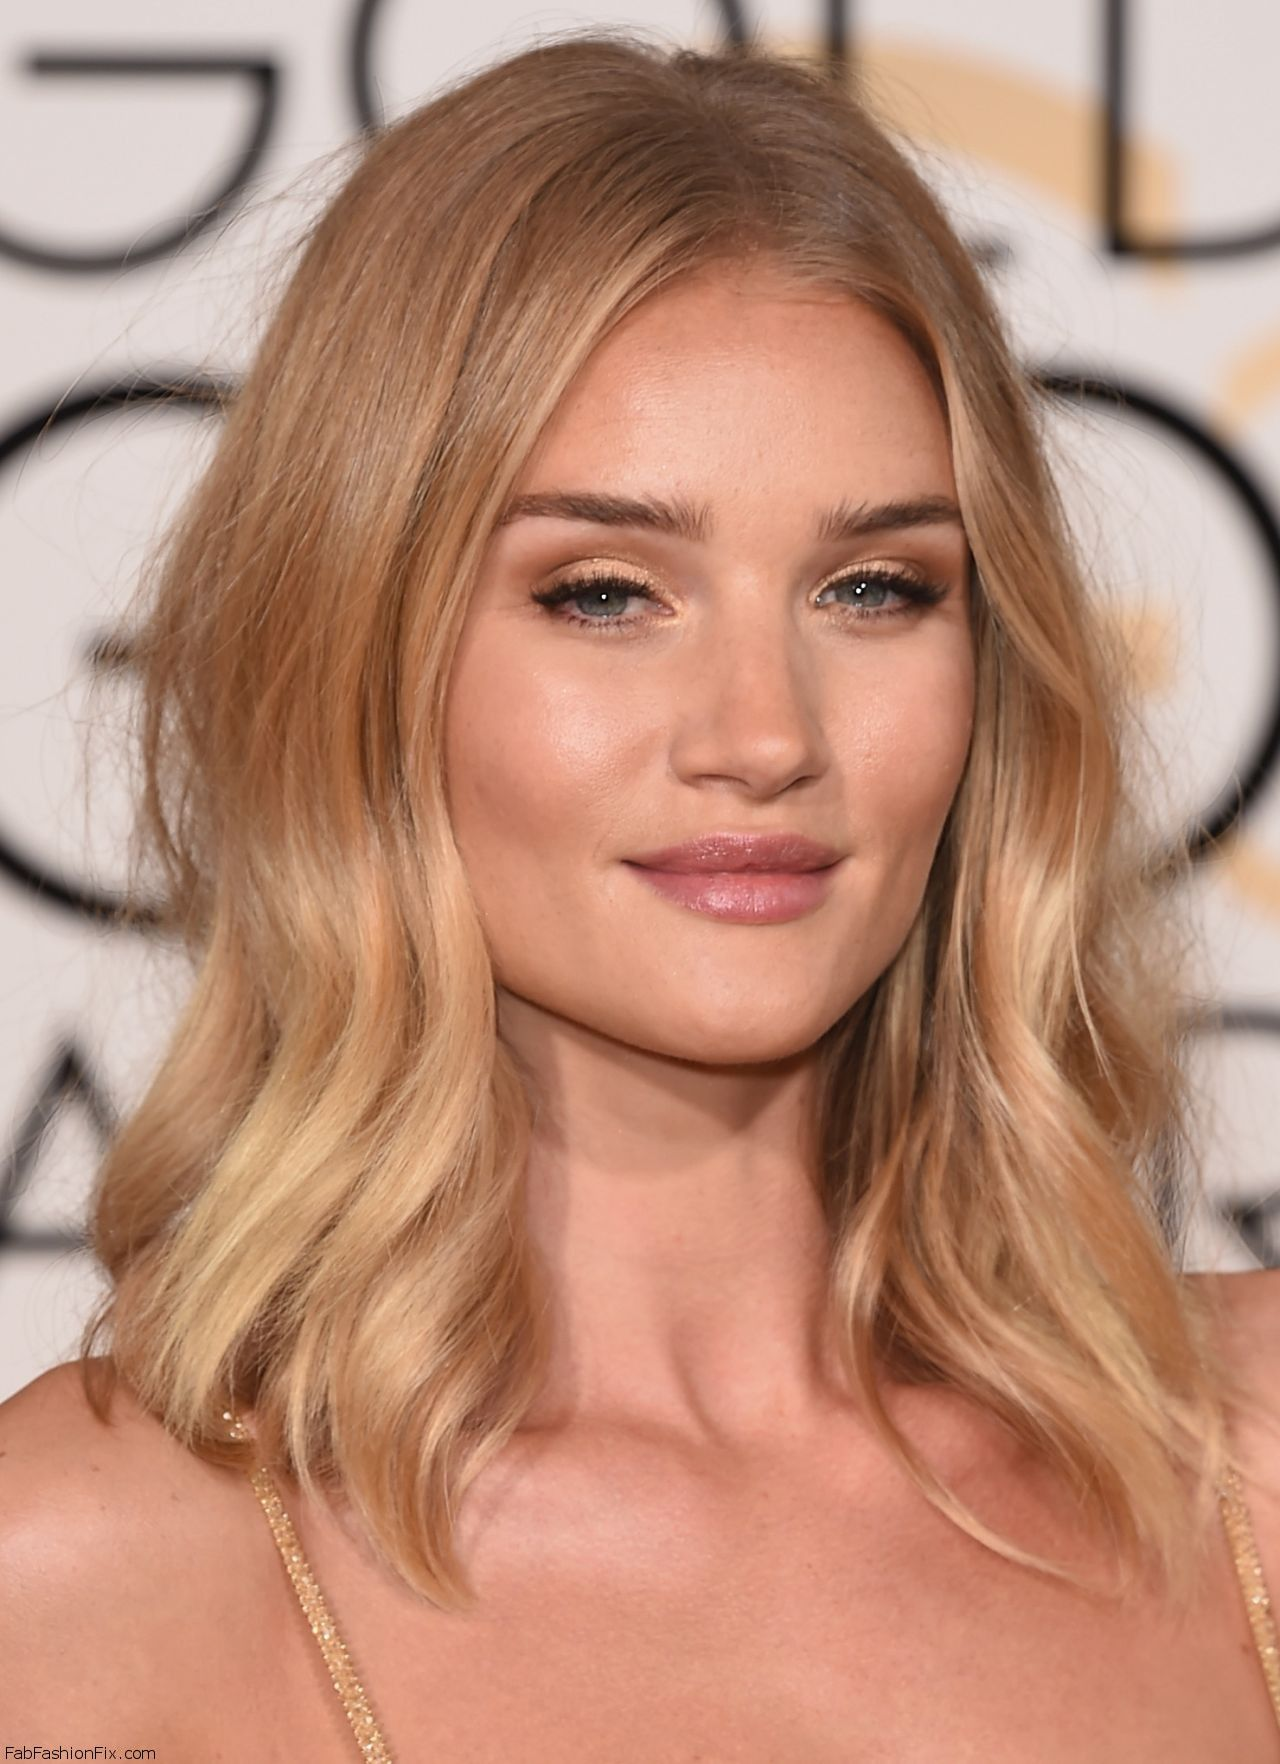 rosie-huntington-whiteley-2016-golden-globe-awards-in-beverly-hills-4